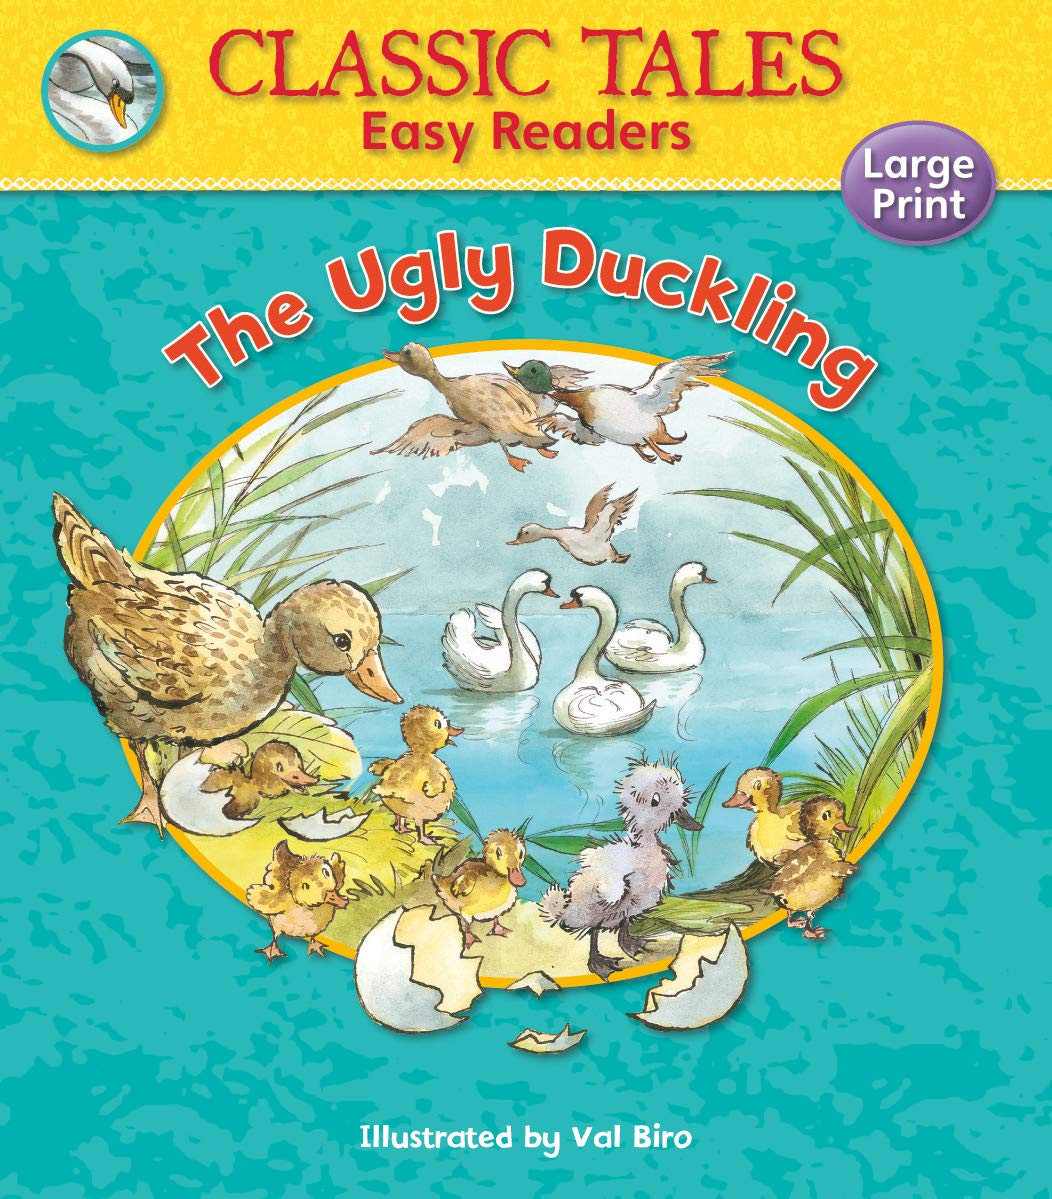 THE UGLY DUCKLING (CLASSIC TALES EASY READERS)